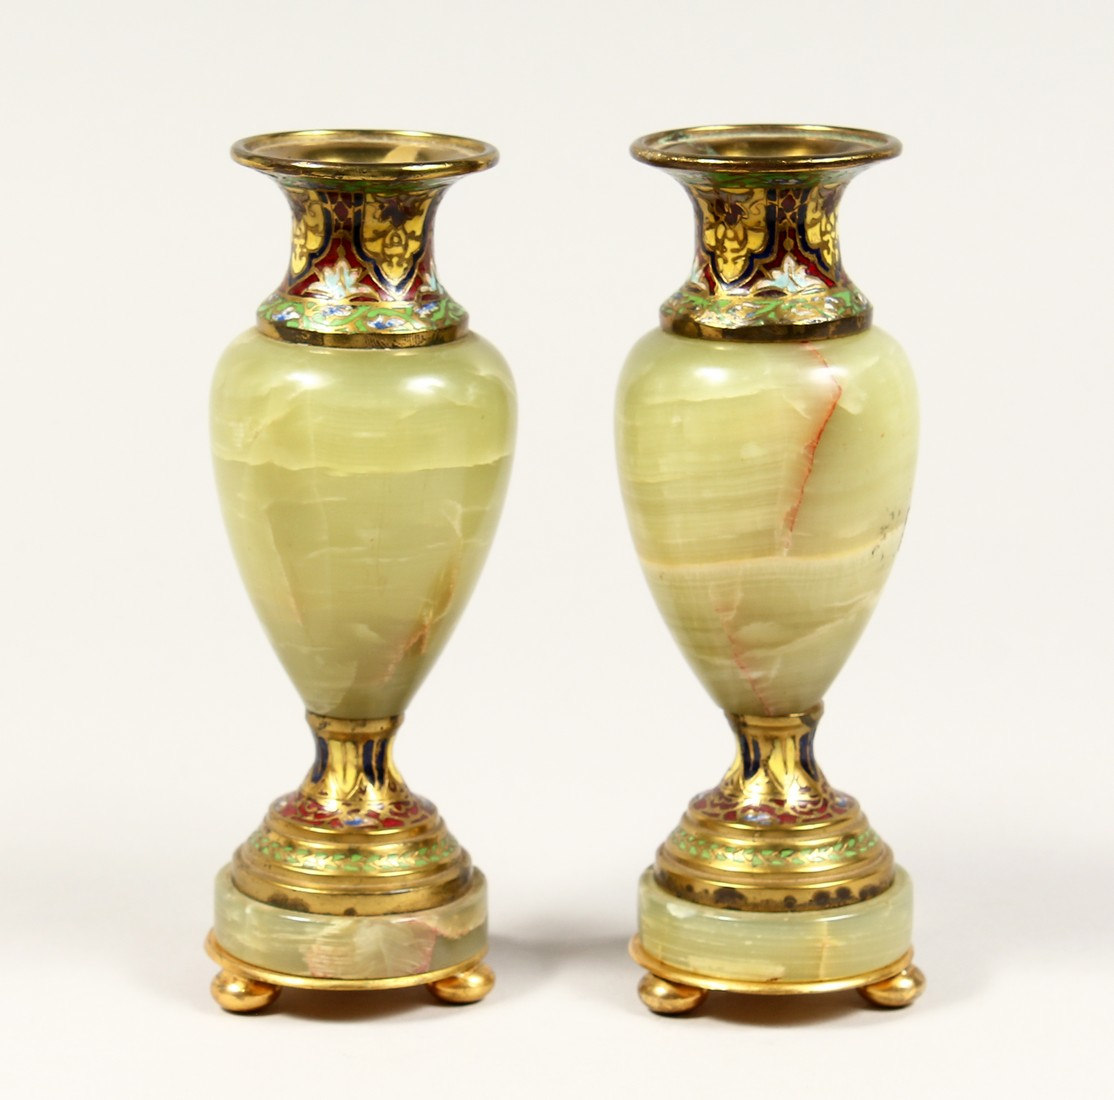 A GOOD SMALL PAIR OF FRENCH CHAMPAGNE ENAMEL AND ONYX VASES. 6.5ins high.